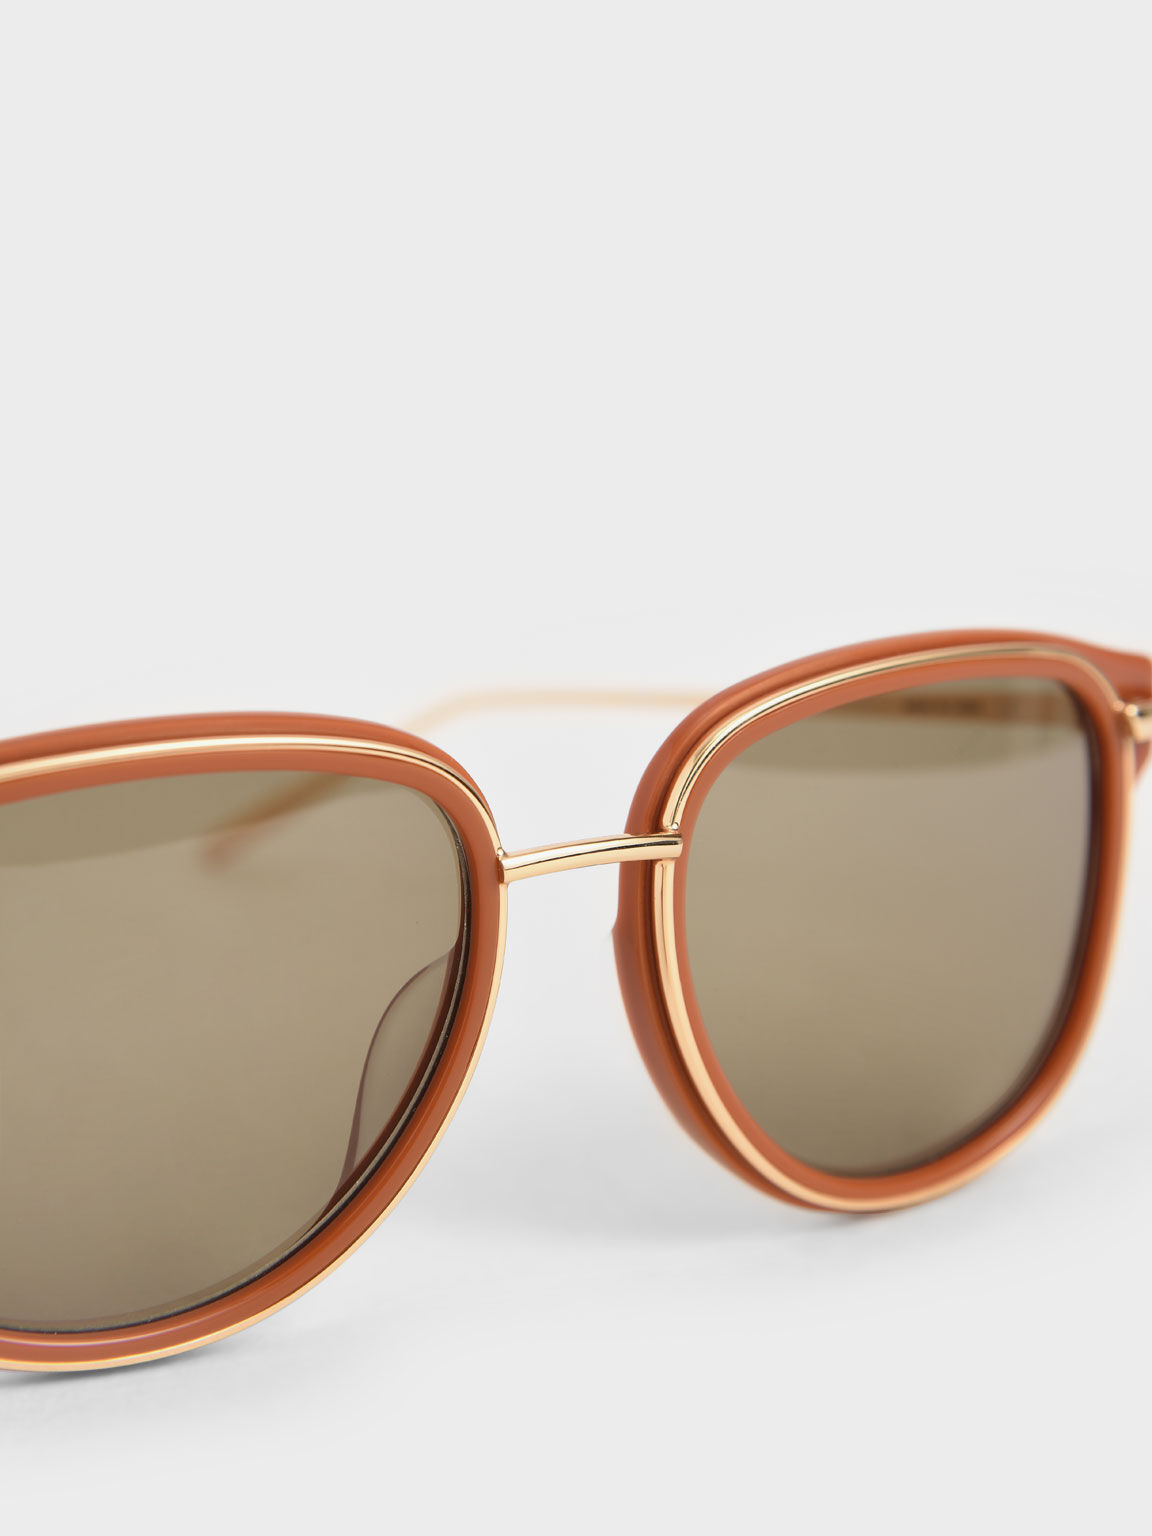 Oval Sunglasses, Clay, hi-res